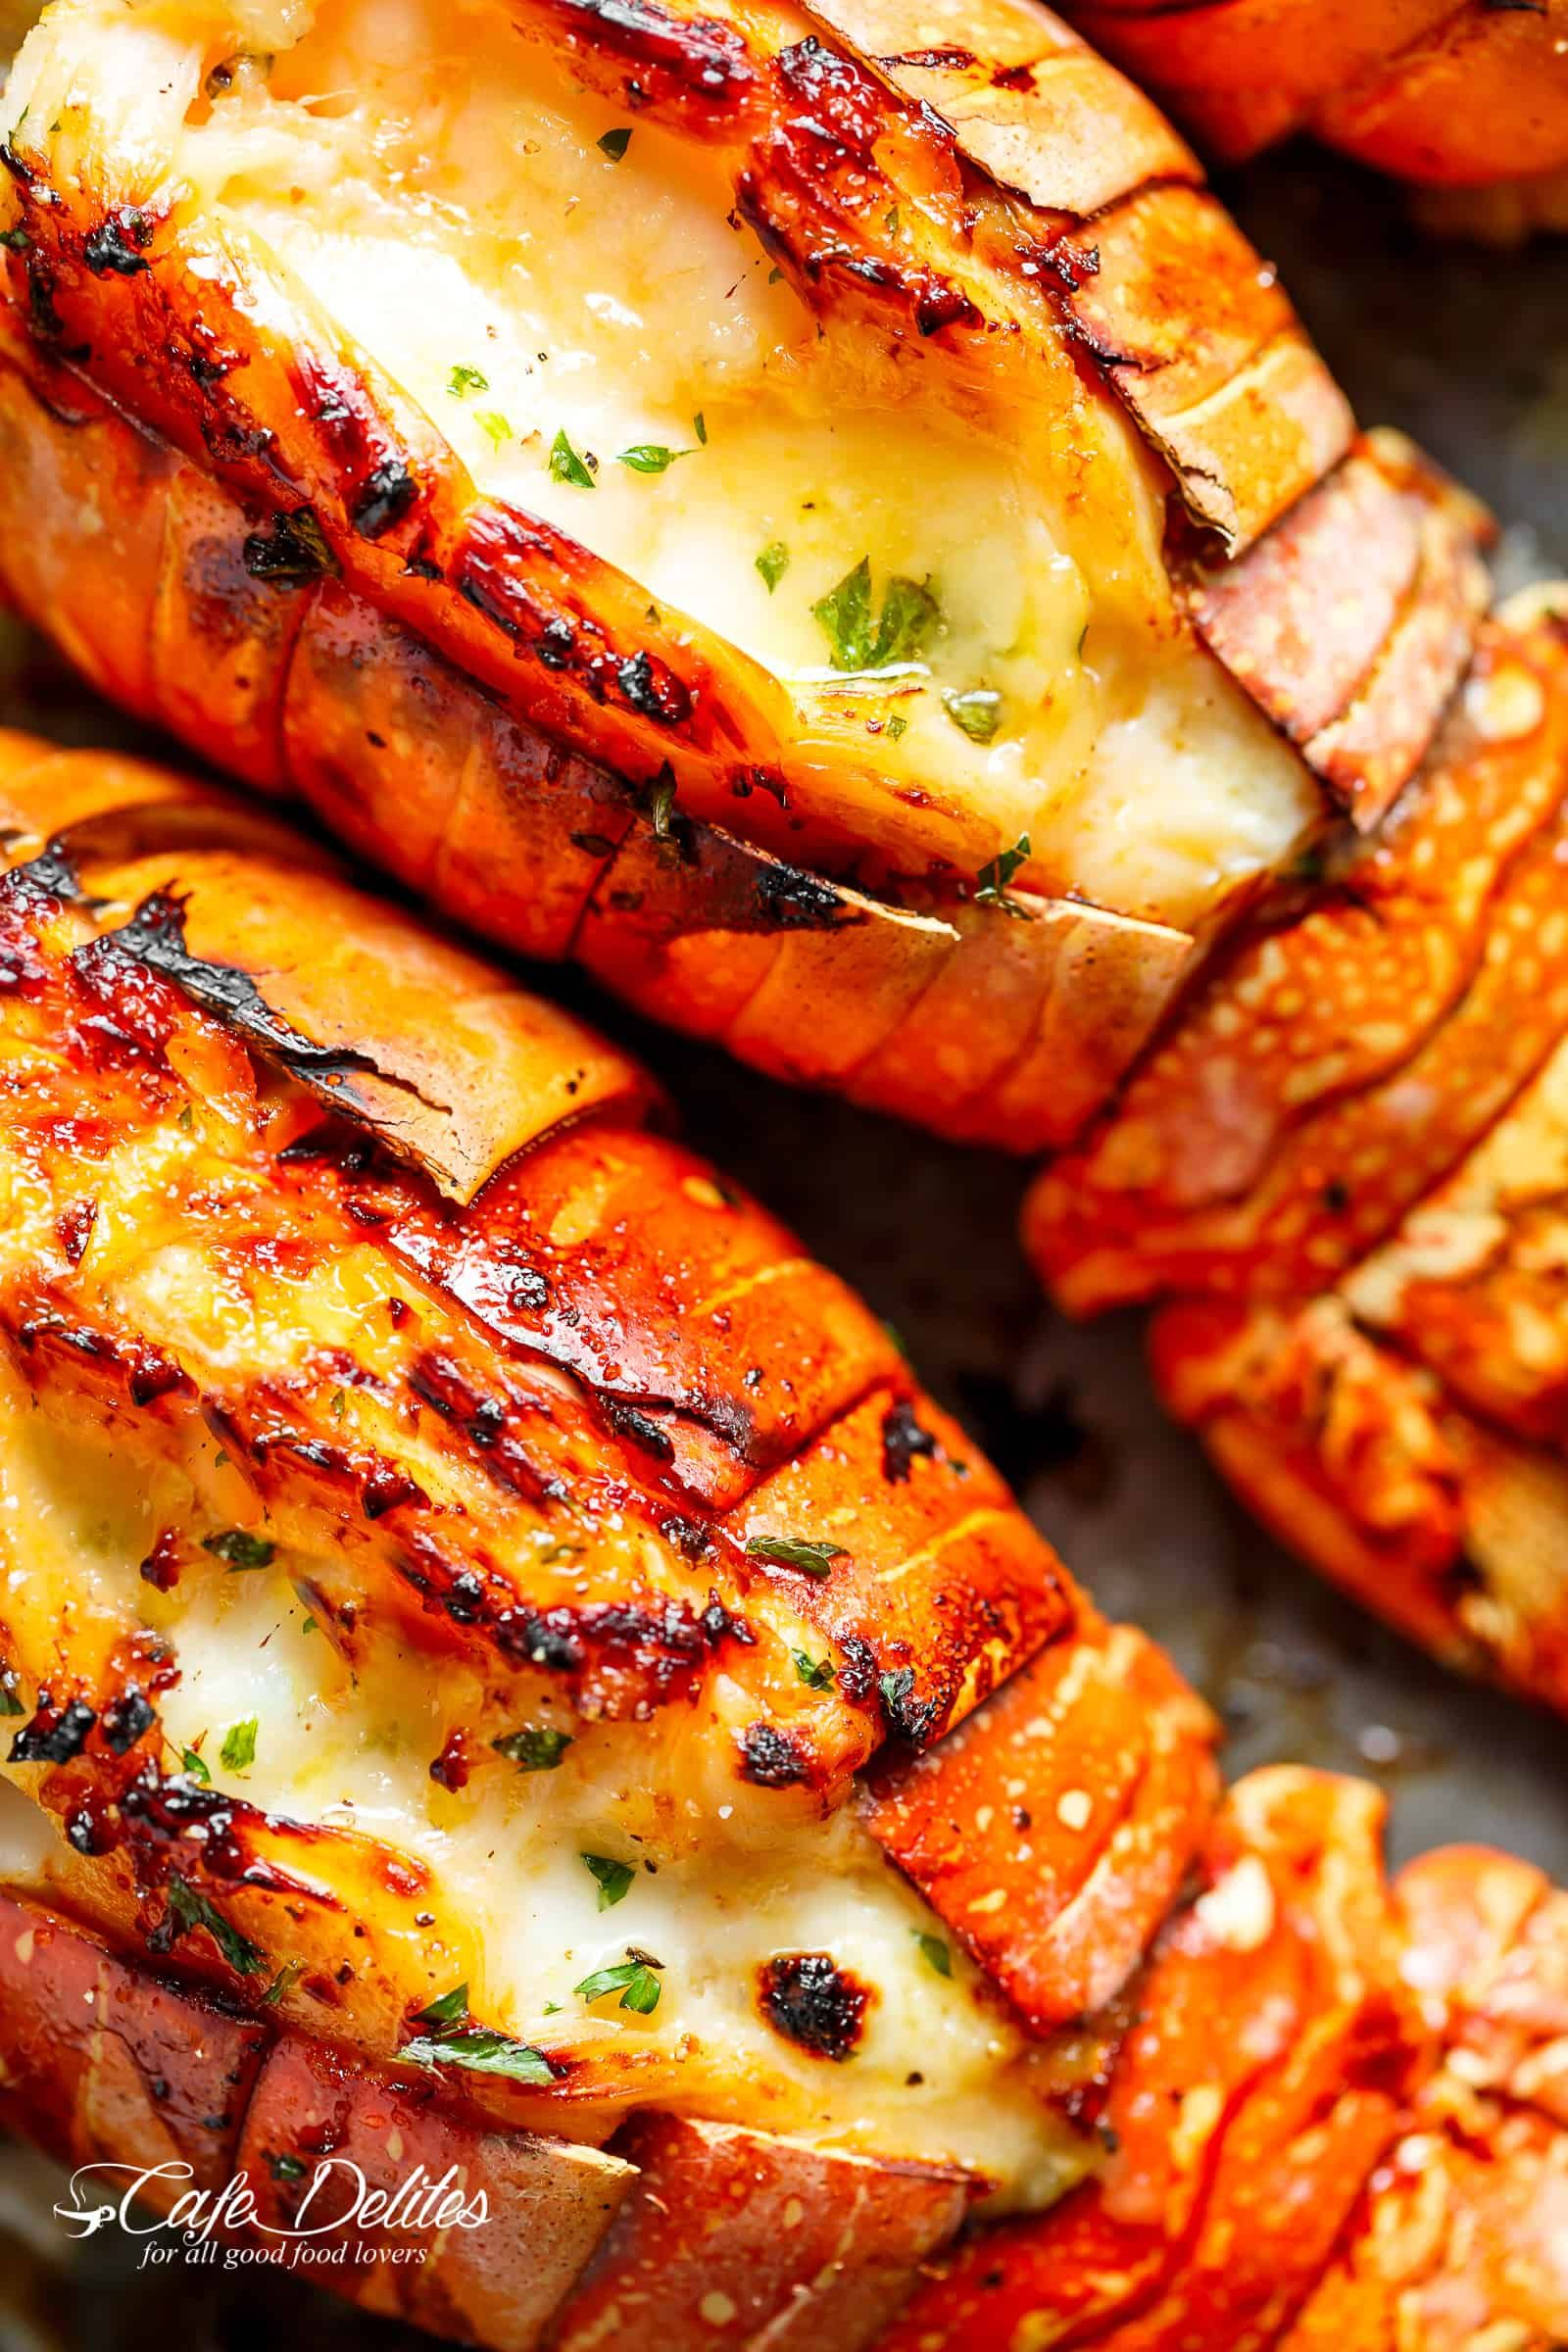 Broiled Lobster Tails With Honey Garlic Butter White Wine Sauce Cafedelites Com Lobster Recipes Tail Broil Lobster Tail Steak And Lobster Dinner